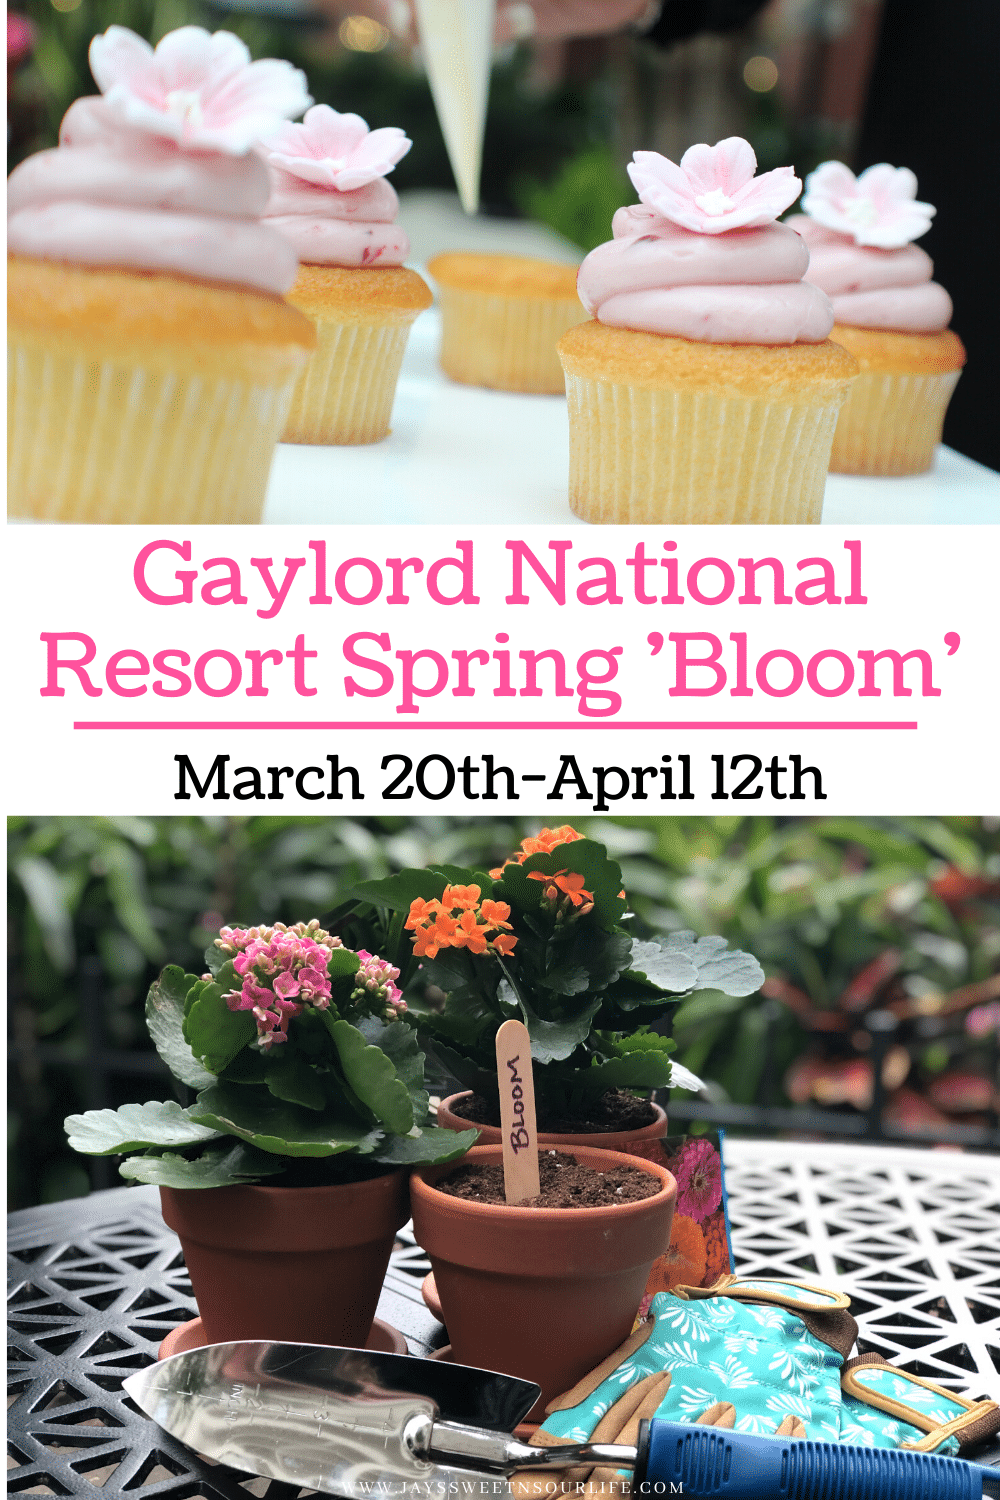 Gaylord National Spring Bloom. Beginning onMarch 20ththrough April 12th,Gaylord National Resortis bringing backBloom, a four-week celebration full of spring-focused activities. With endless offerings inside the resort, guests can also enjoy the beautiful sight of over 100 cherry blossom trees adorning the National Harbor.